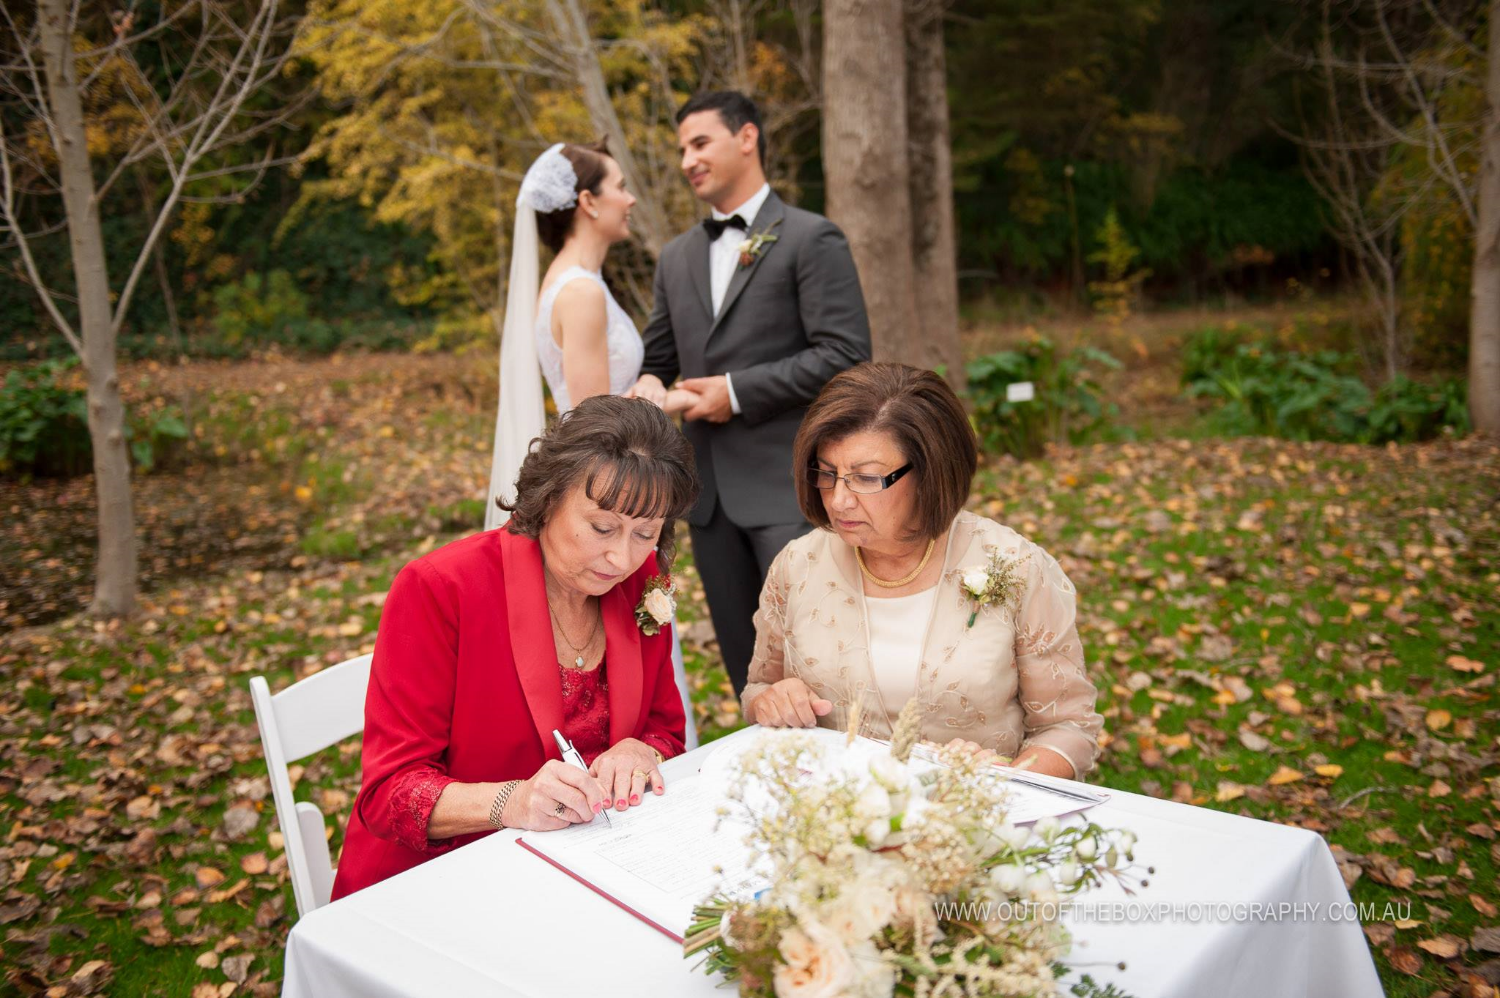 Levana and Ben asked their Mum's to be their witnesses at Glen Ewin Estate. Photo by Out Of The Box Photography.